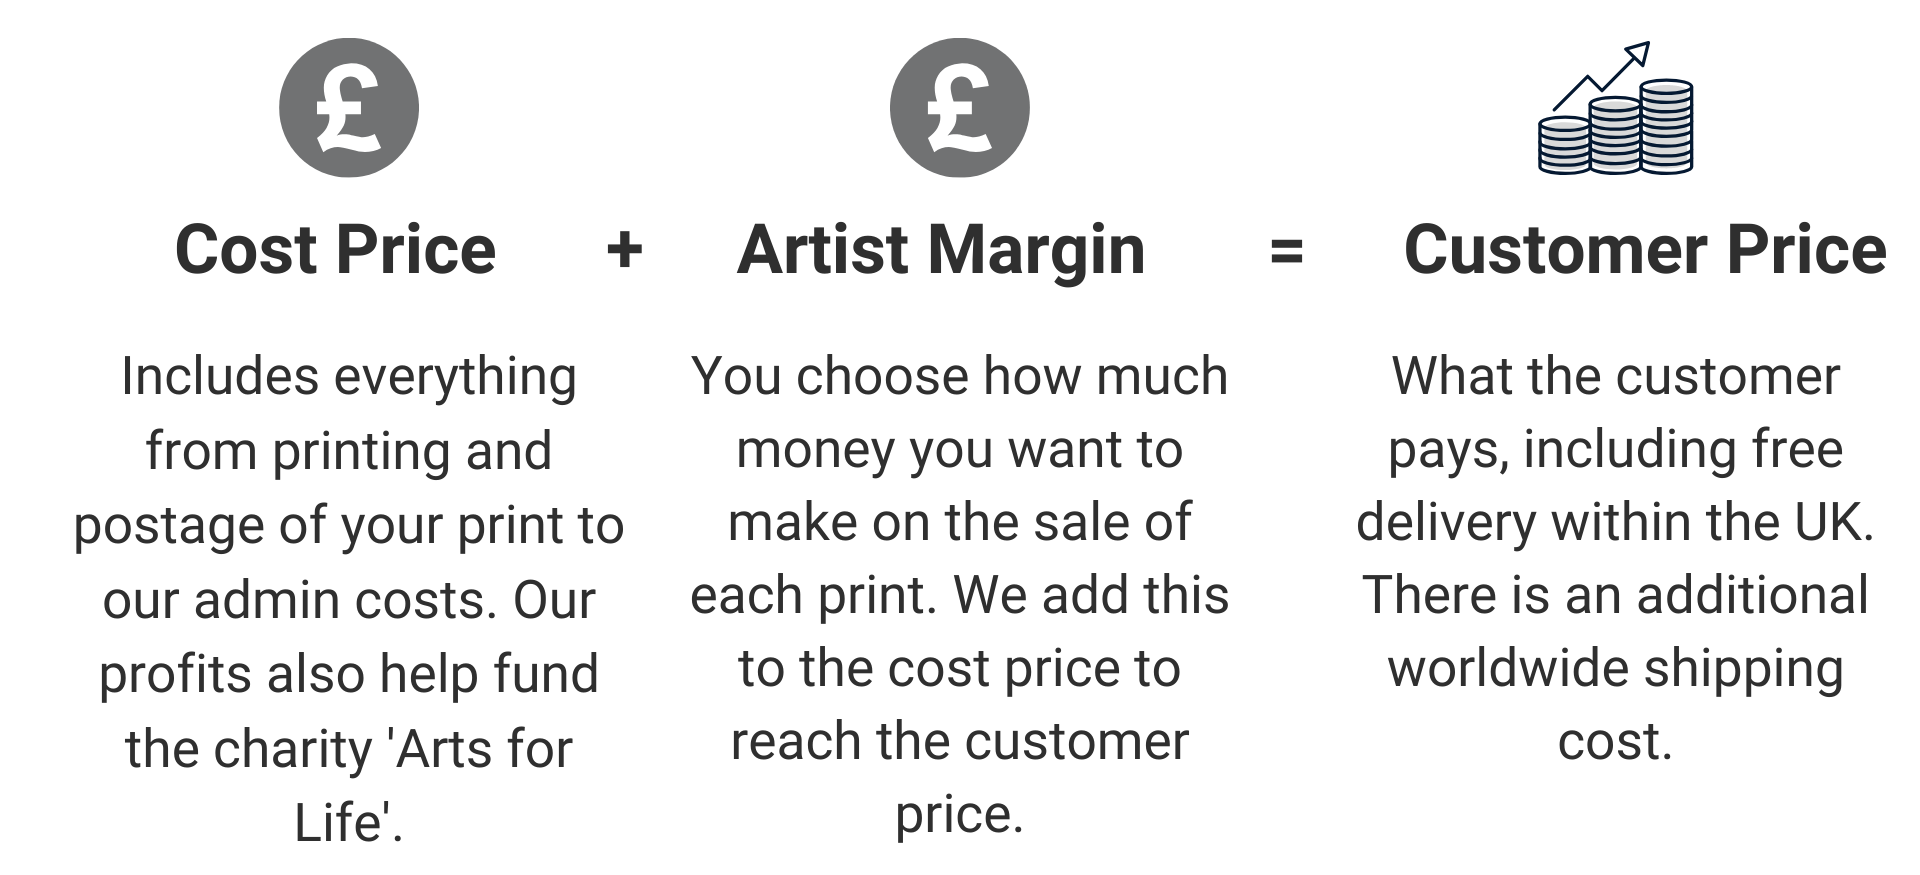 Pricing - Your Art Butler